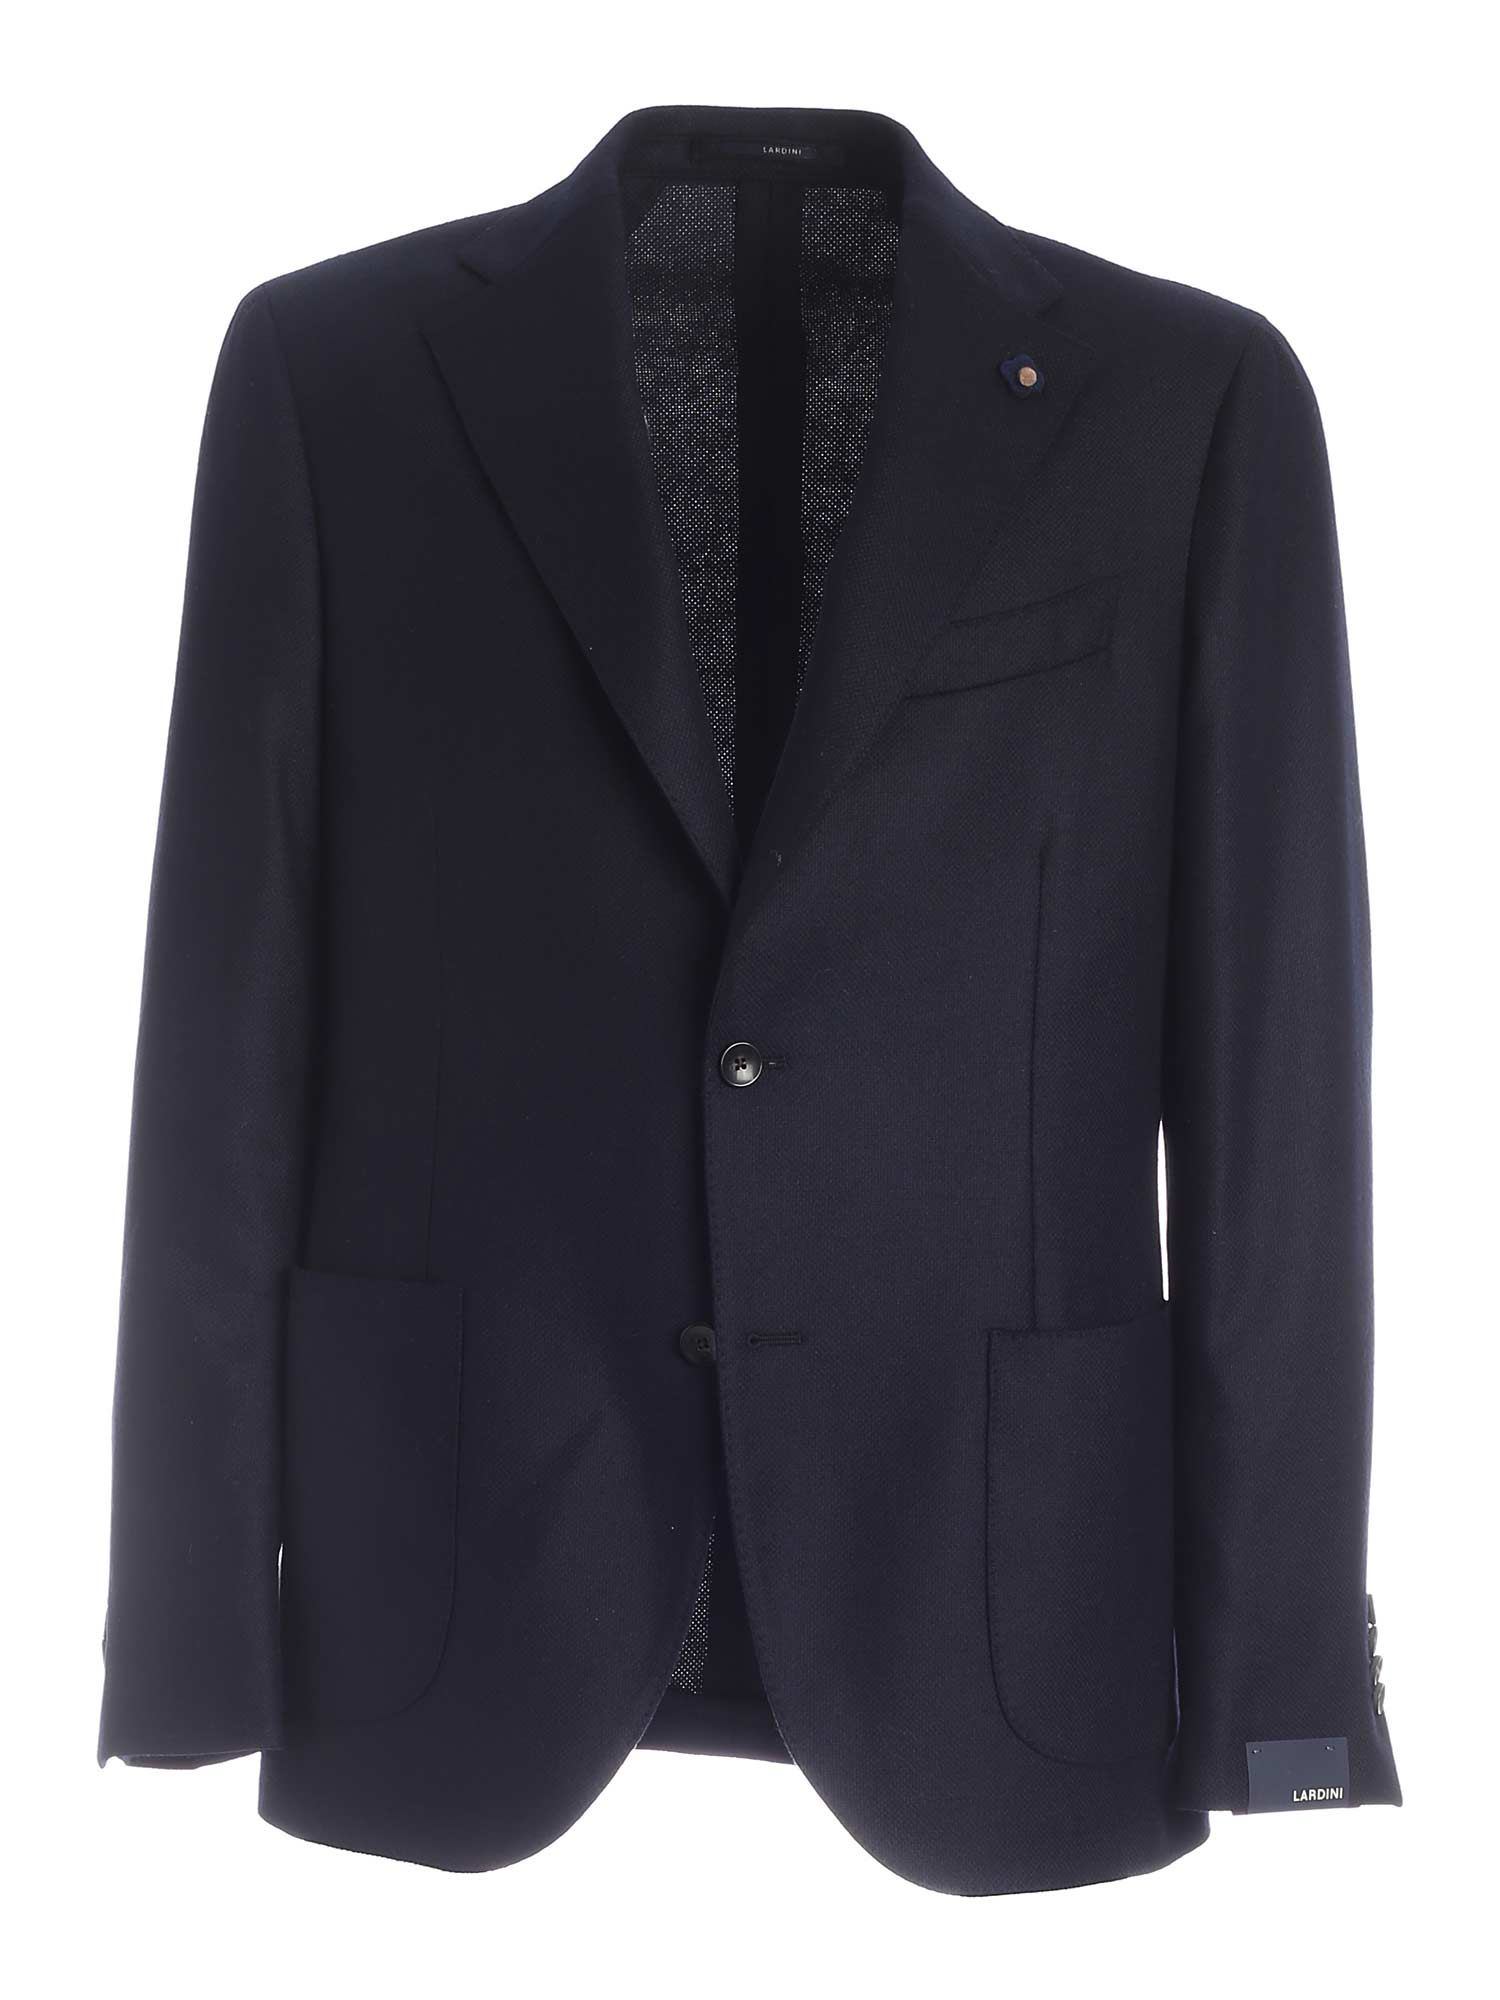 Lardini LOGO BROOCH SINGLE-BREASTED JACKET IN BLUE